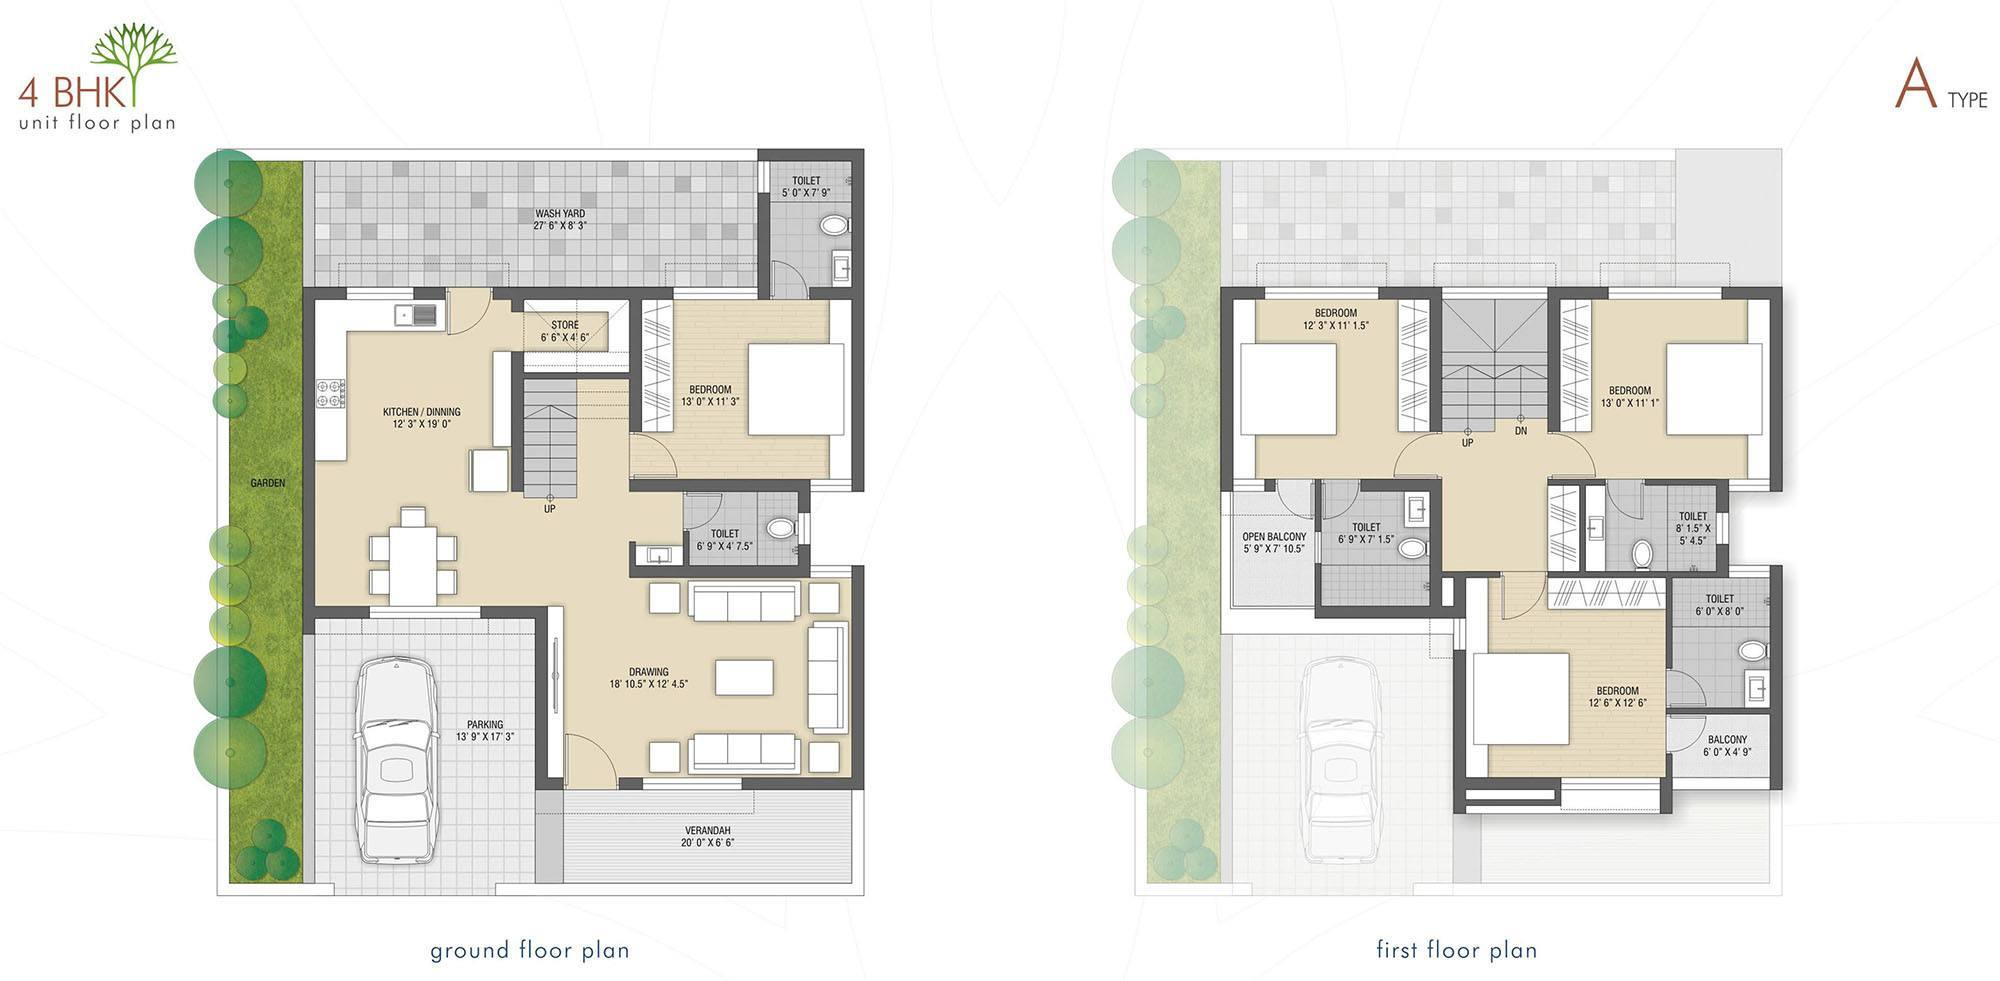 4 bhk home plan house design plans for House layout plan